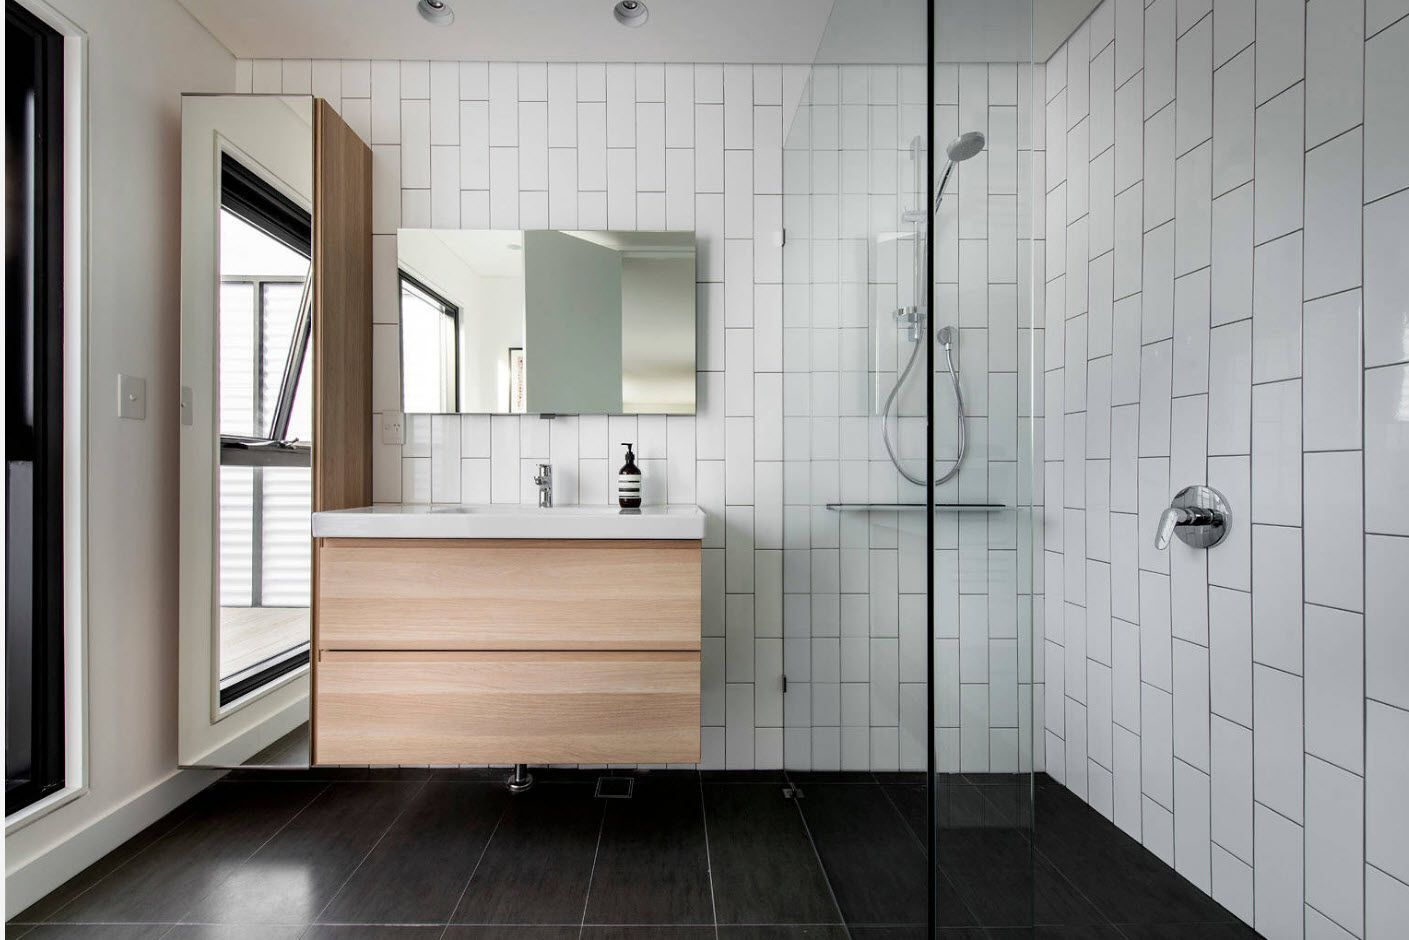 White metro tile on the walls and black stone on the florr